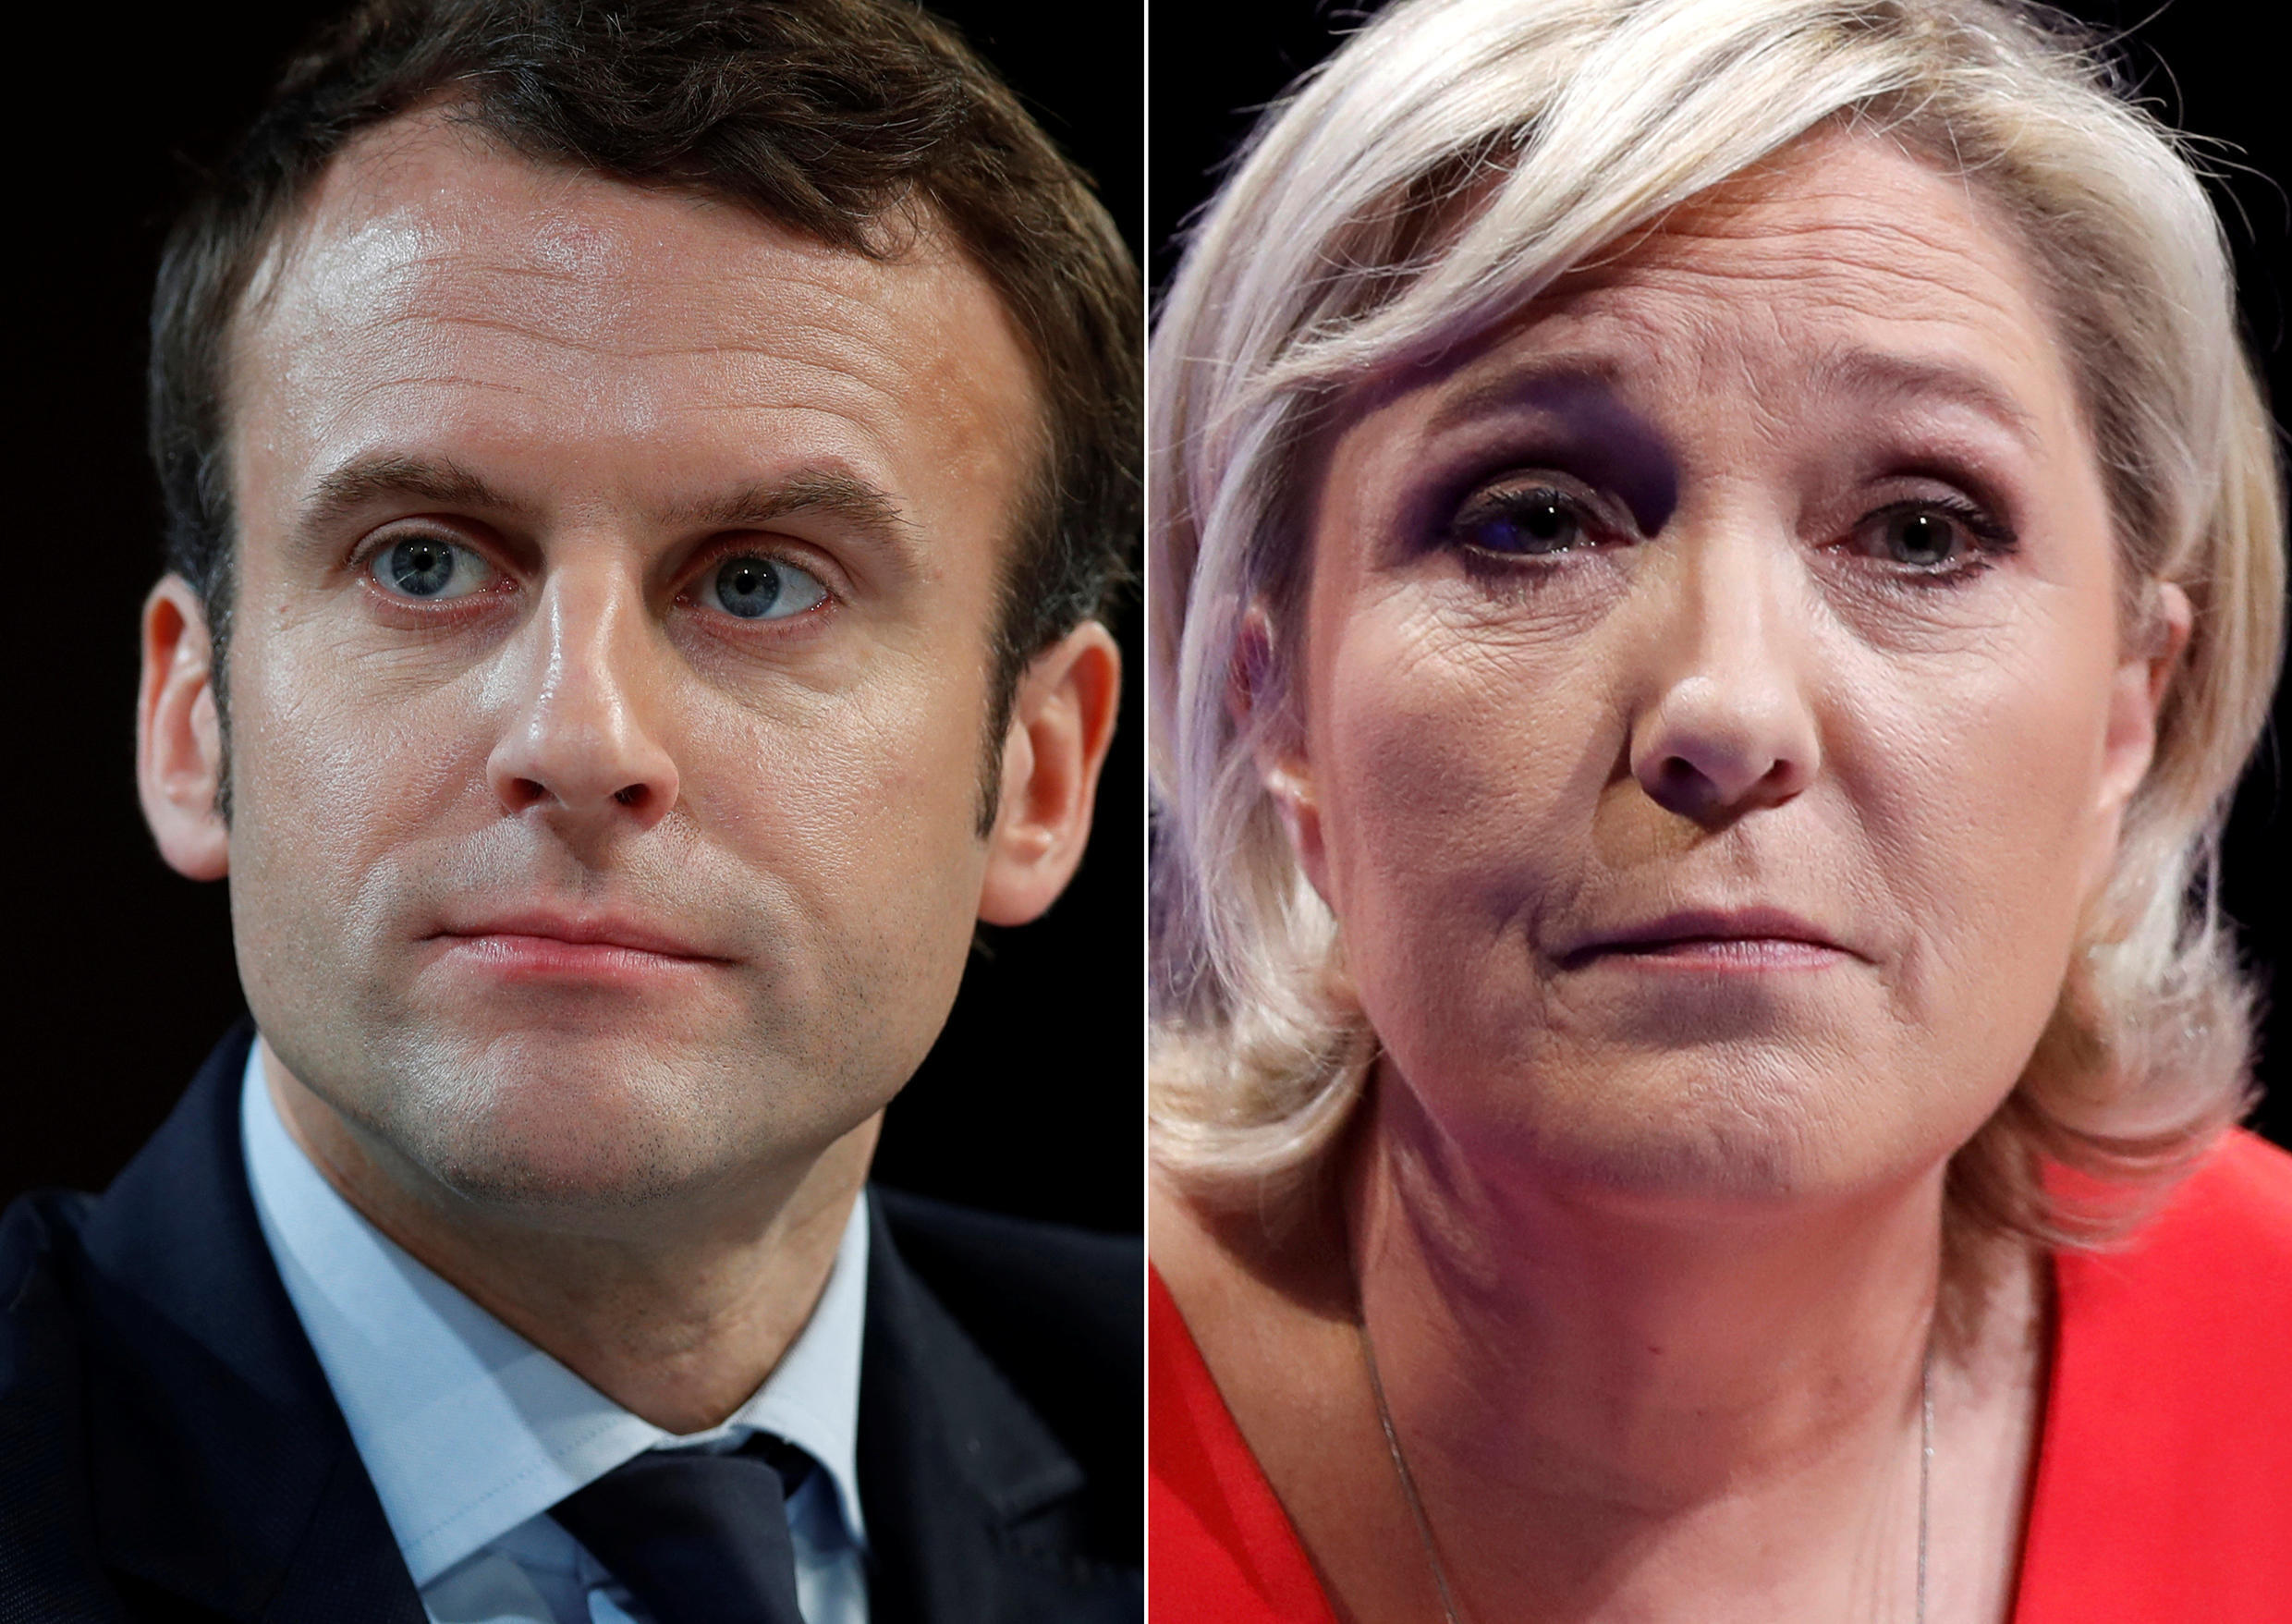 A combination picture shows portraits of the candidates who will run in the second round in the 2017 French presidential election, Emmanuel Macron (L), head of the political movement En Marche !, or Onwards !, and Marine Le Pen, French National Front (FN)